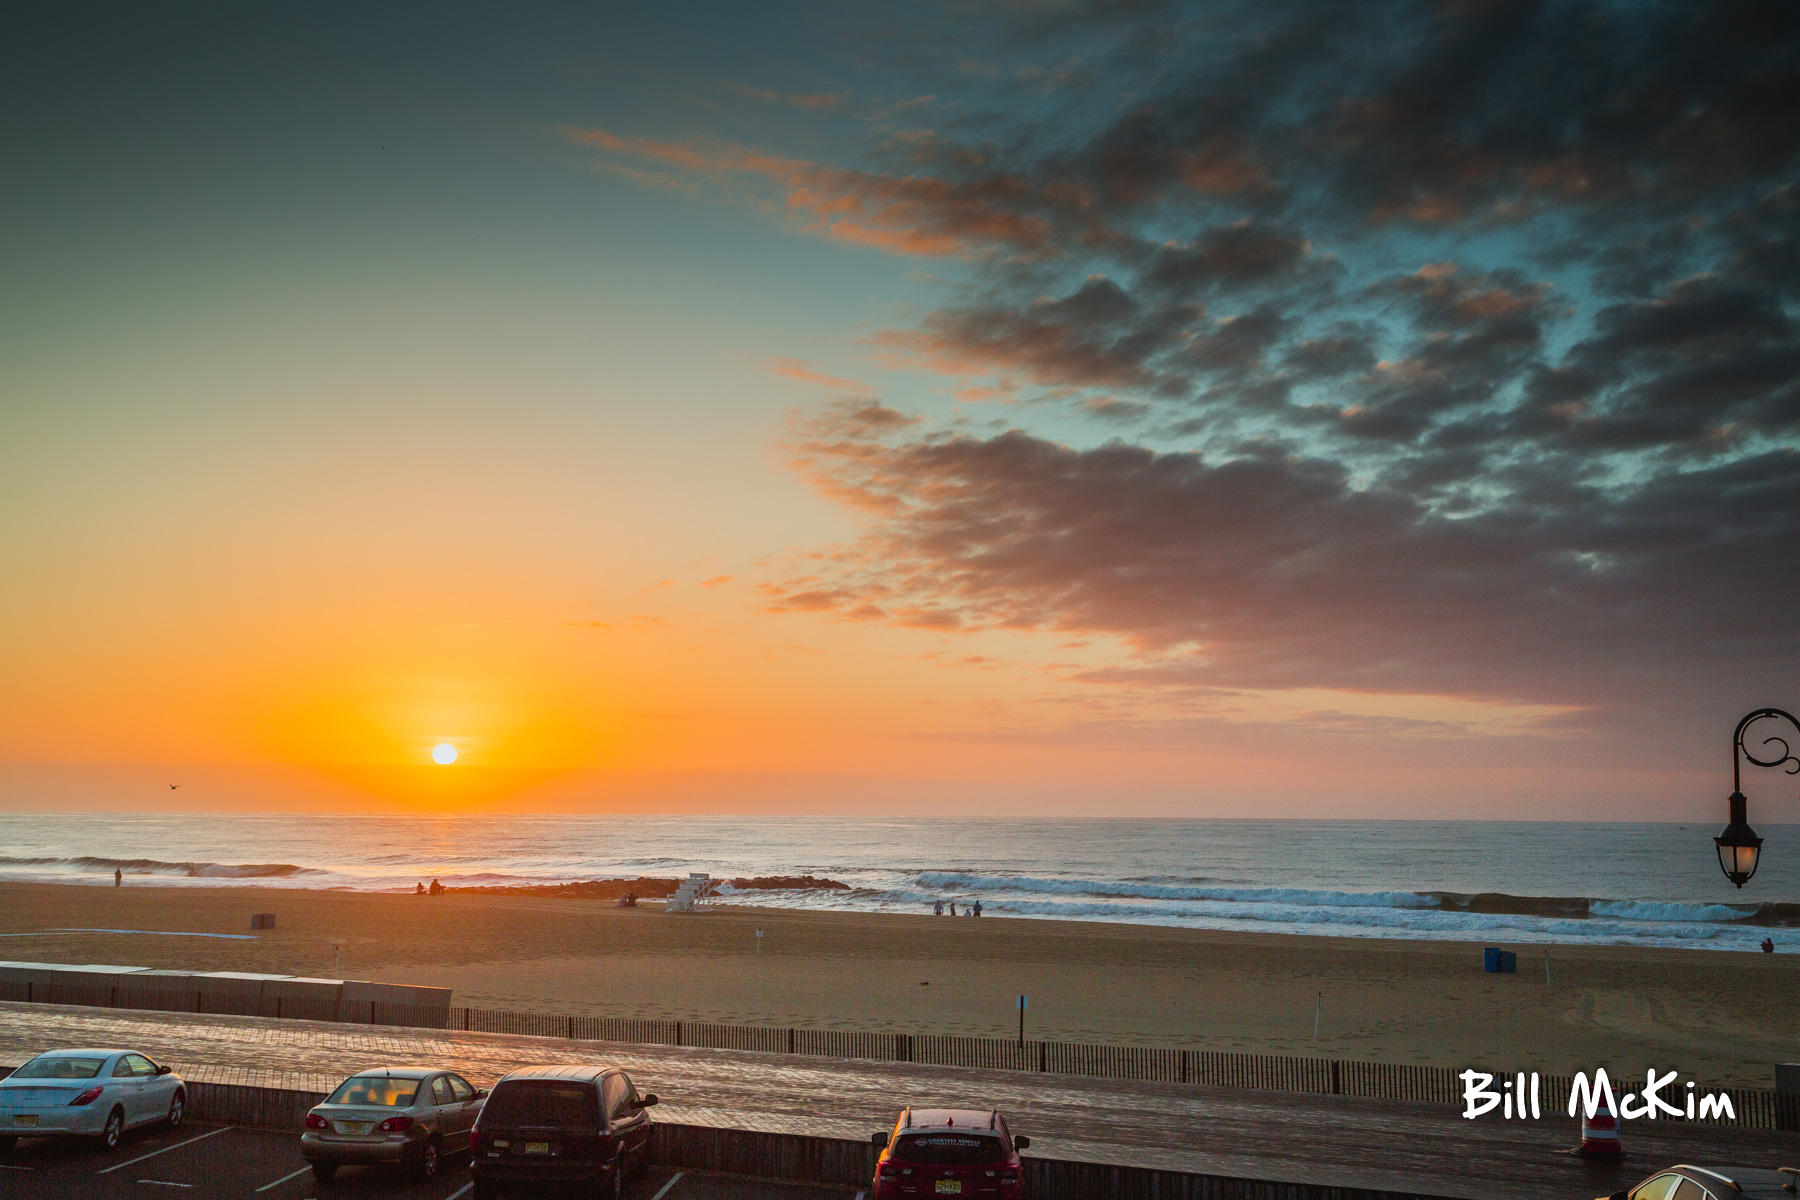 belmar beach sunrise by bill mckim